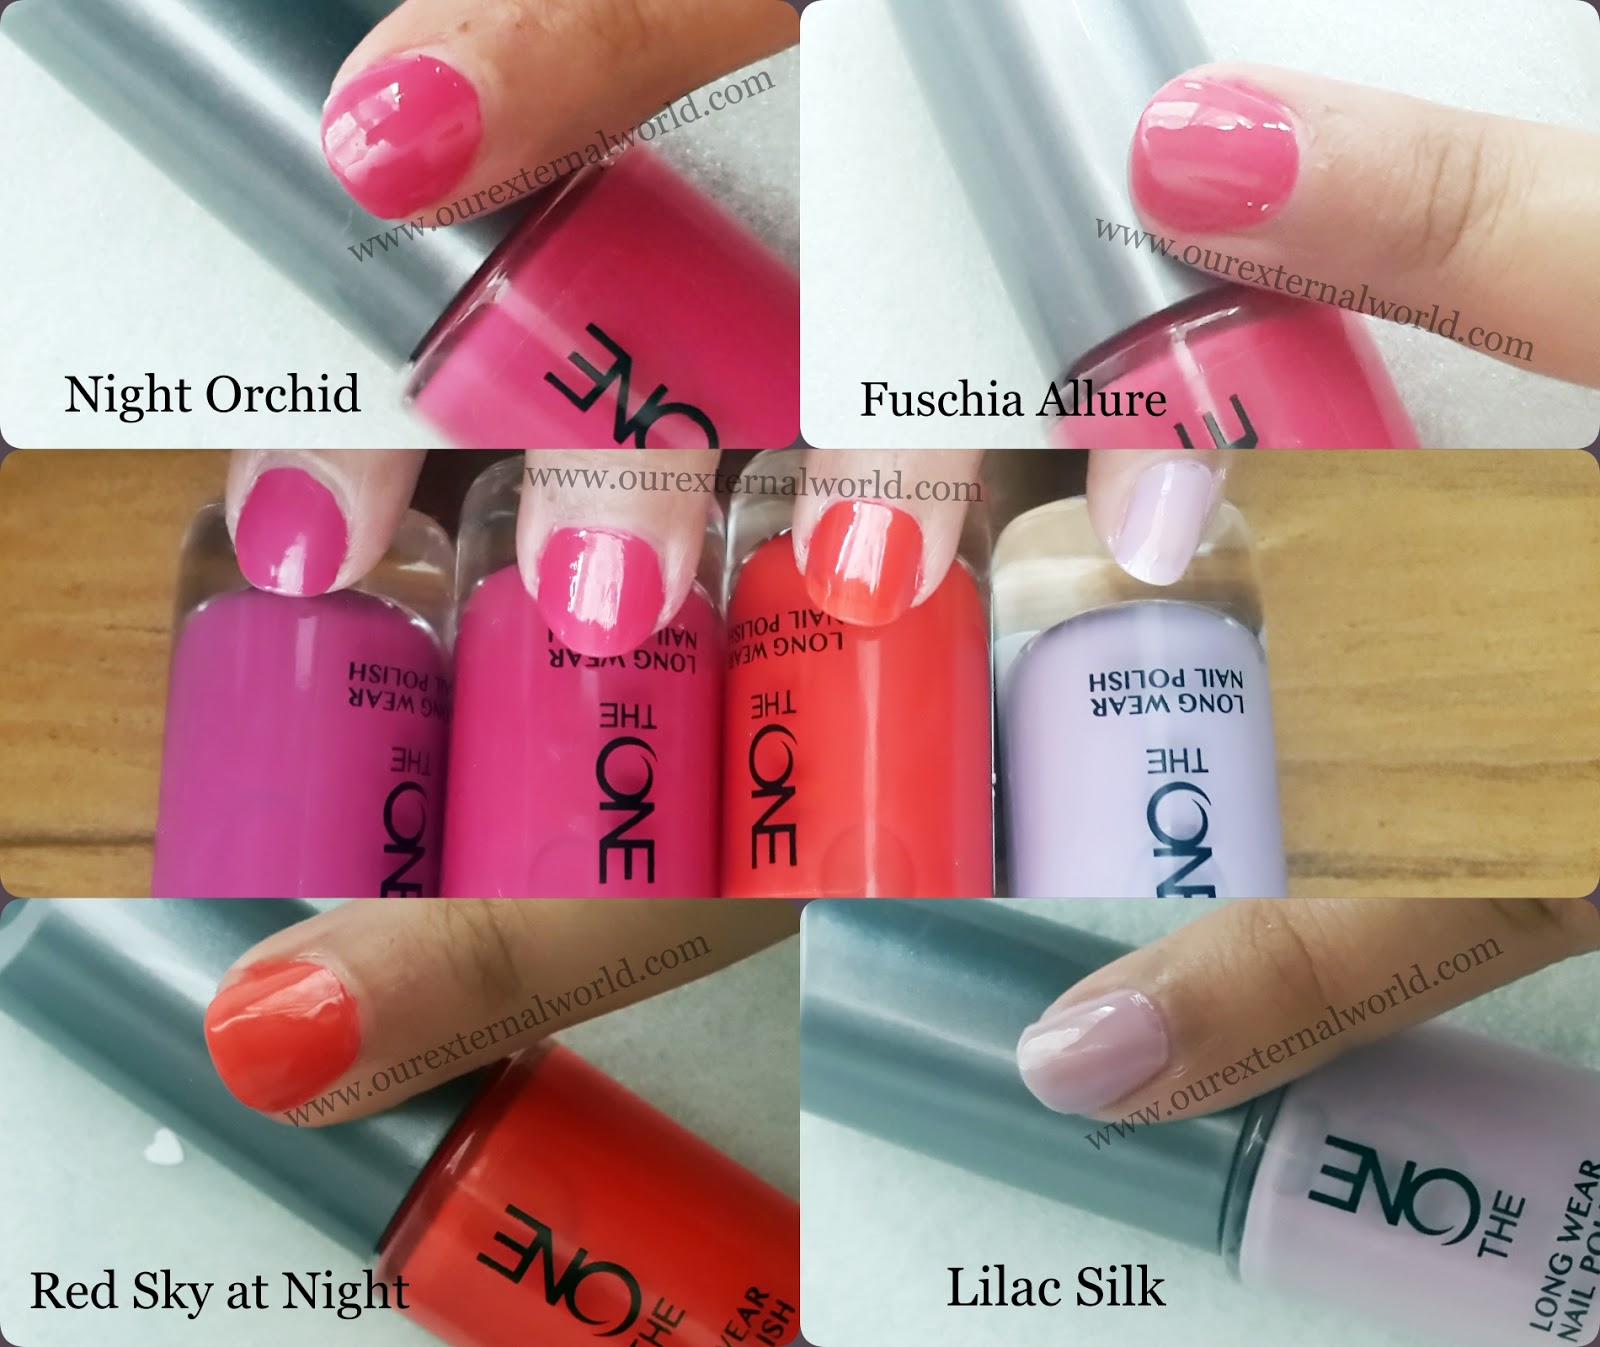 Oriflame The One Long Wear Nail Polish Swatches London Red Night Orchid Fuchsia Allure Red Sky At Night And Lilac Silk